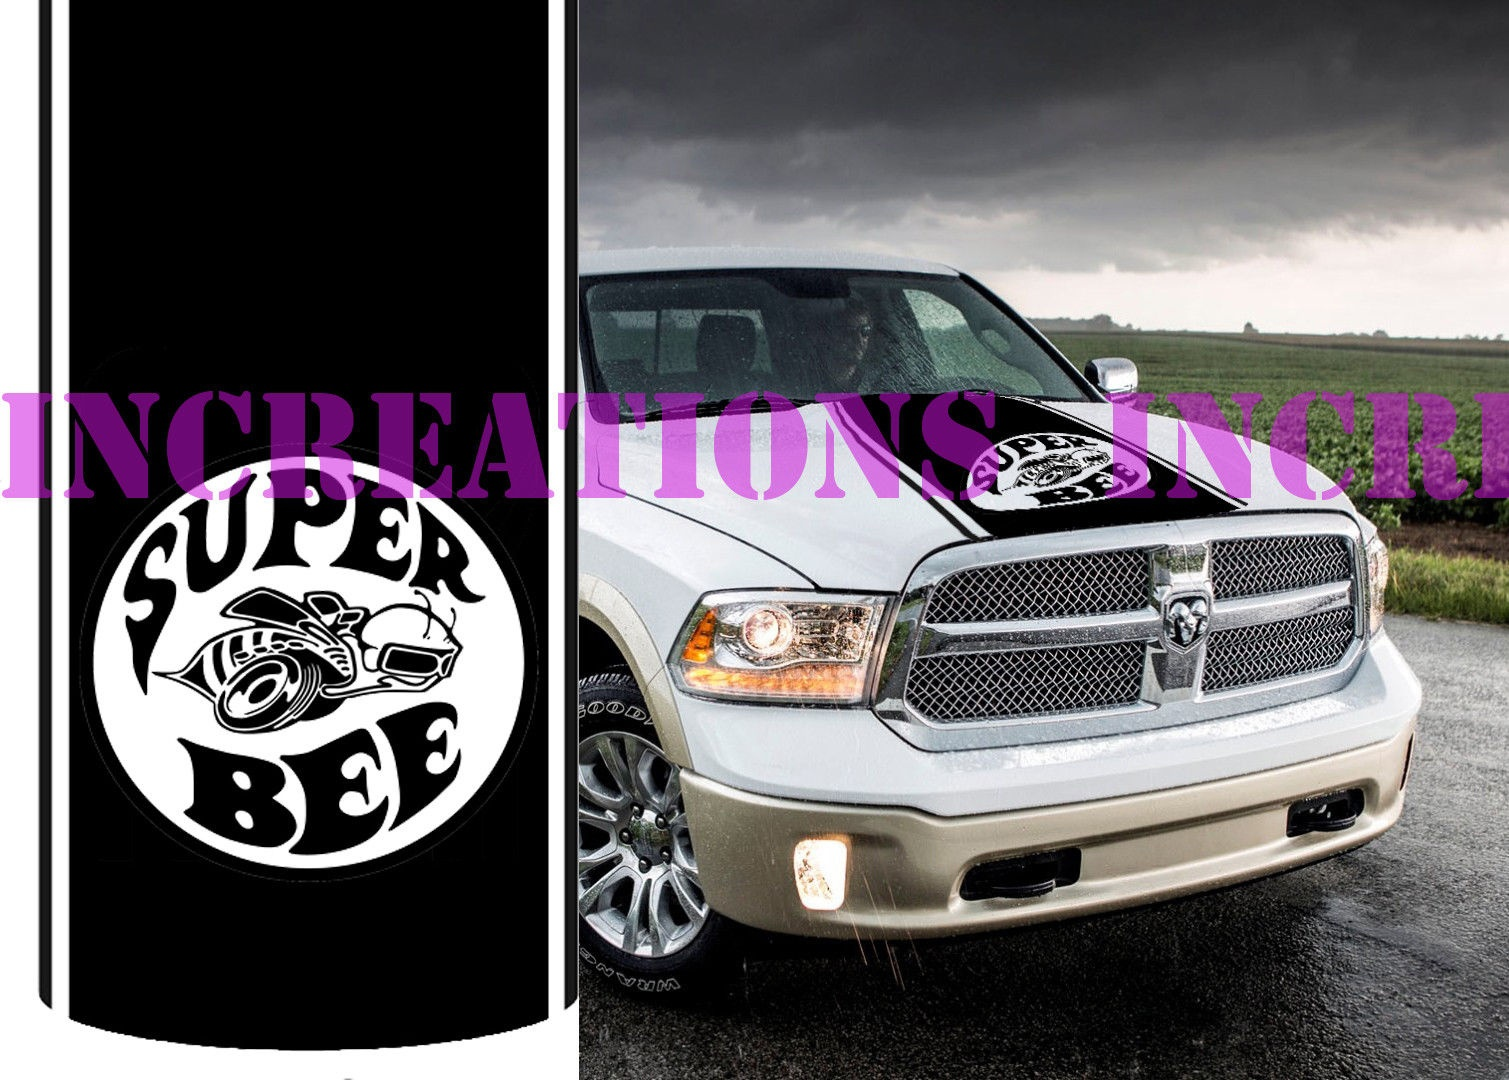 medium resolution of for universal super bee dodge ram hemi rebel sport hood stripe vinyl decal truck racing in car stickers from automobiles motorcycles on aliexpress com